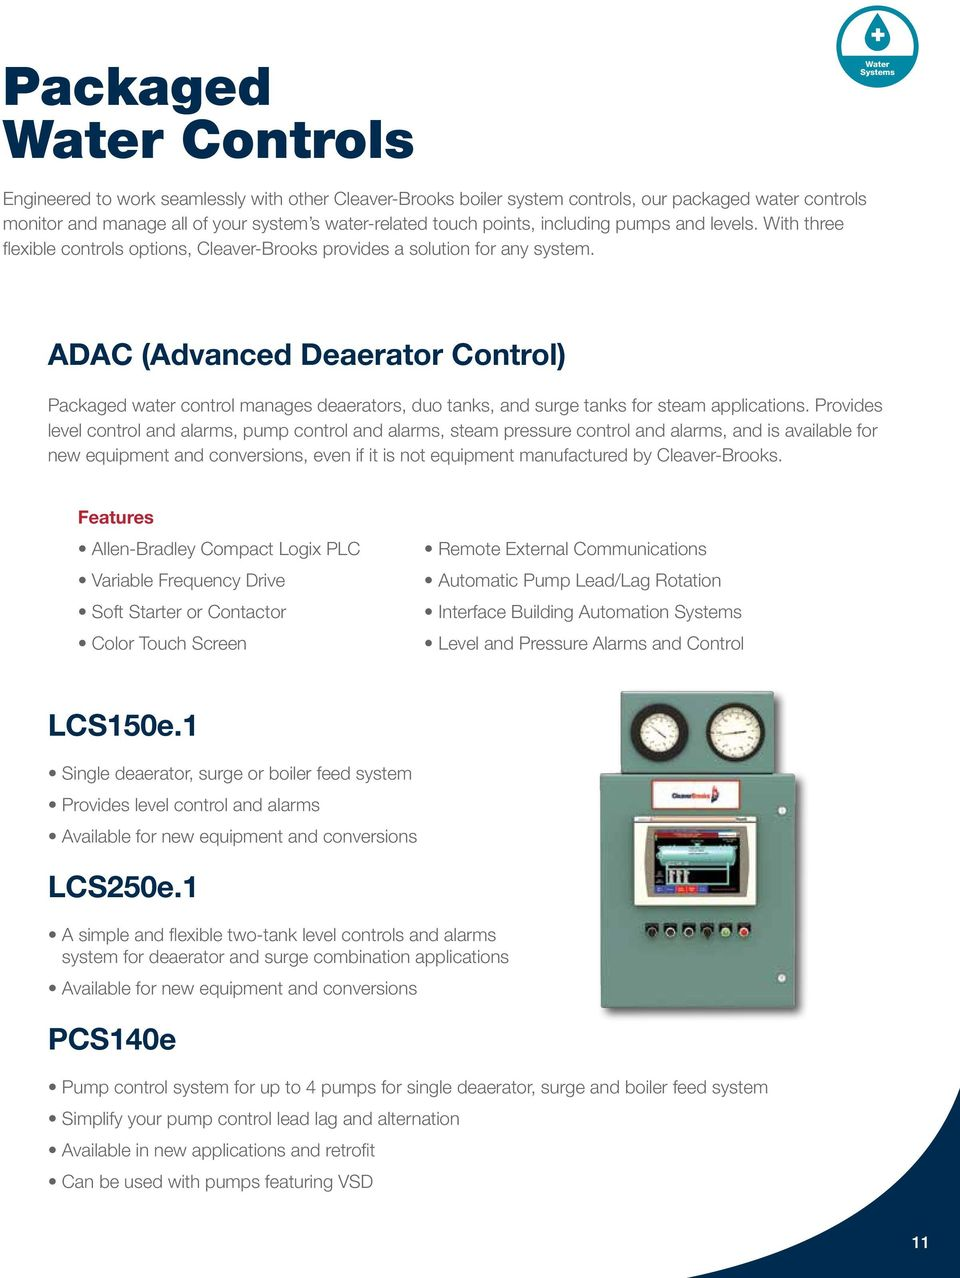 ADAC (Advanced Deaerator Control) Packaged water control manages deaerators, duo tanks, and surge tanks for steam applications.